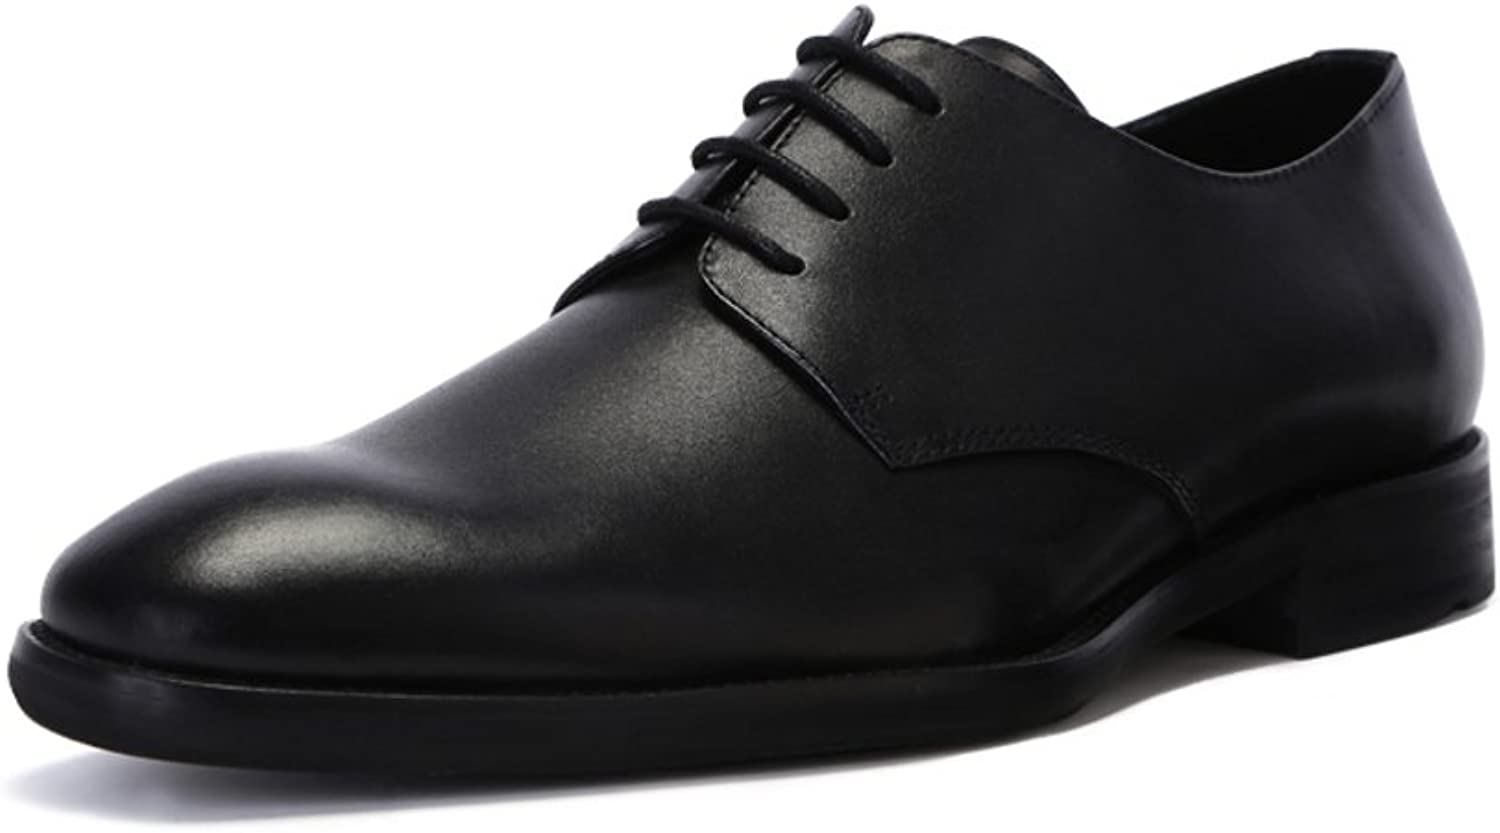 Good high fashion shoes British fashion business men's shoes